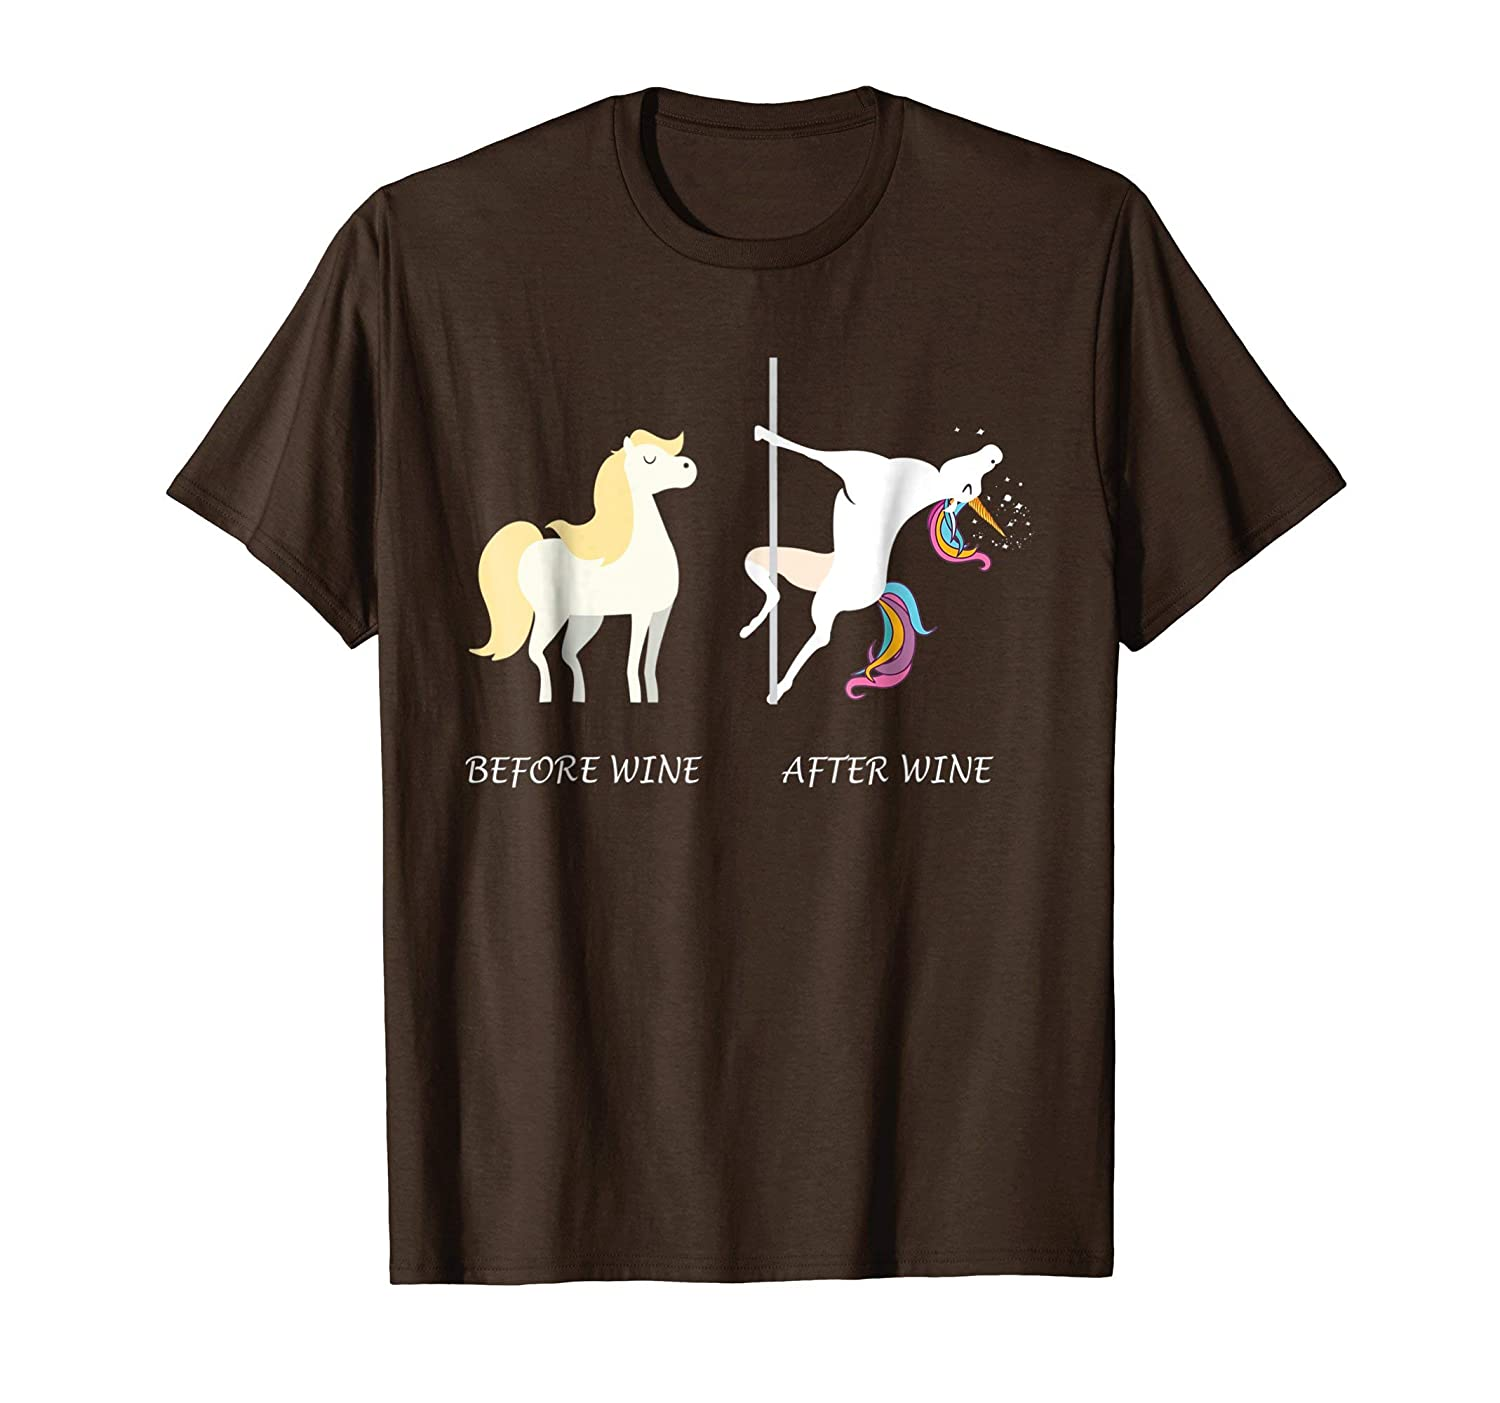 Funny Unicorn Before Wine After Wine T shirts Gift 2018-Bawle